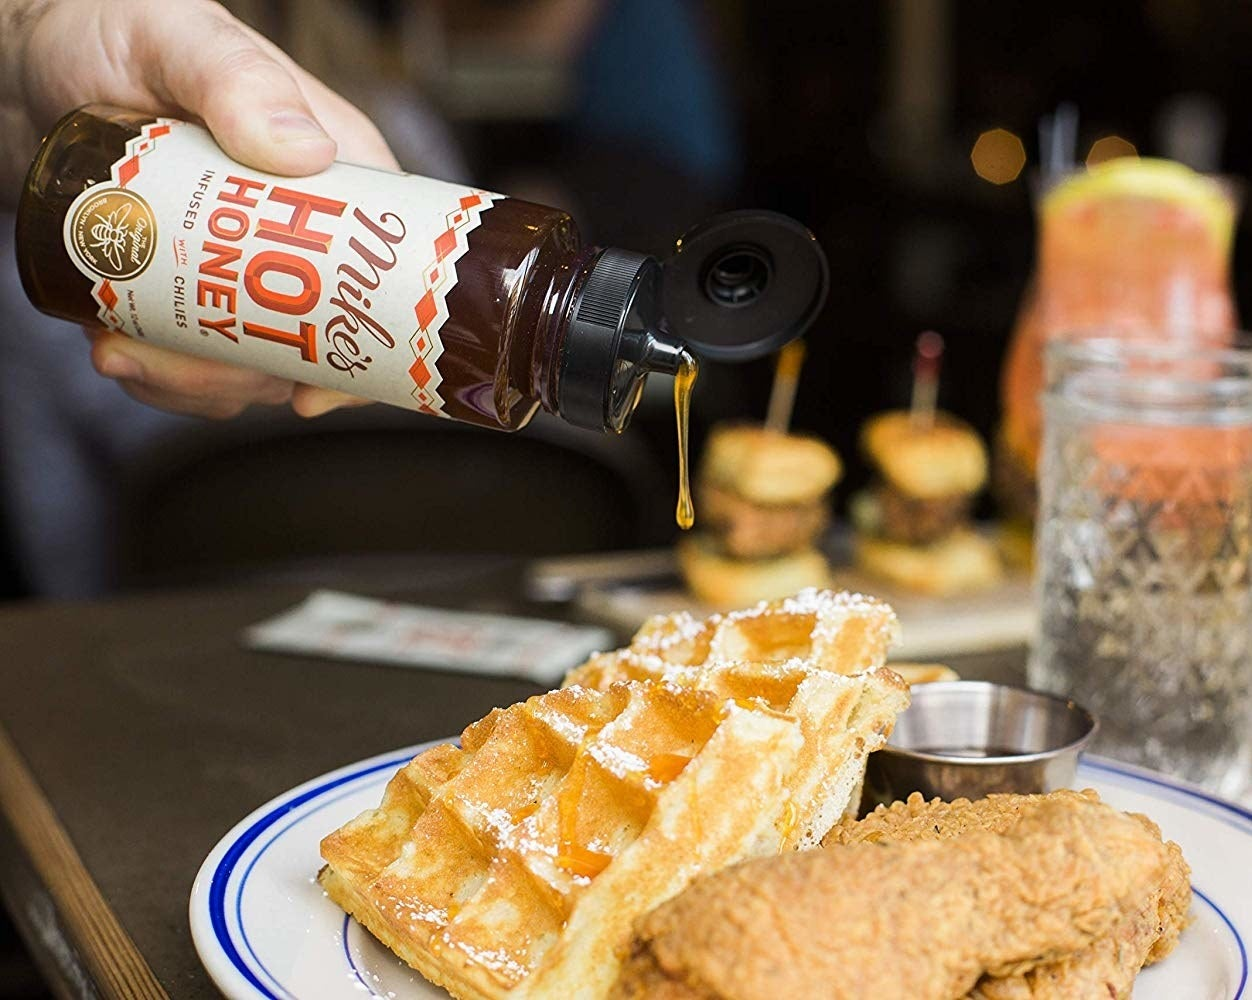 hot honey being squeezed onto chicken and waffles